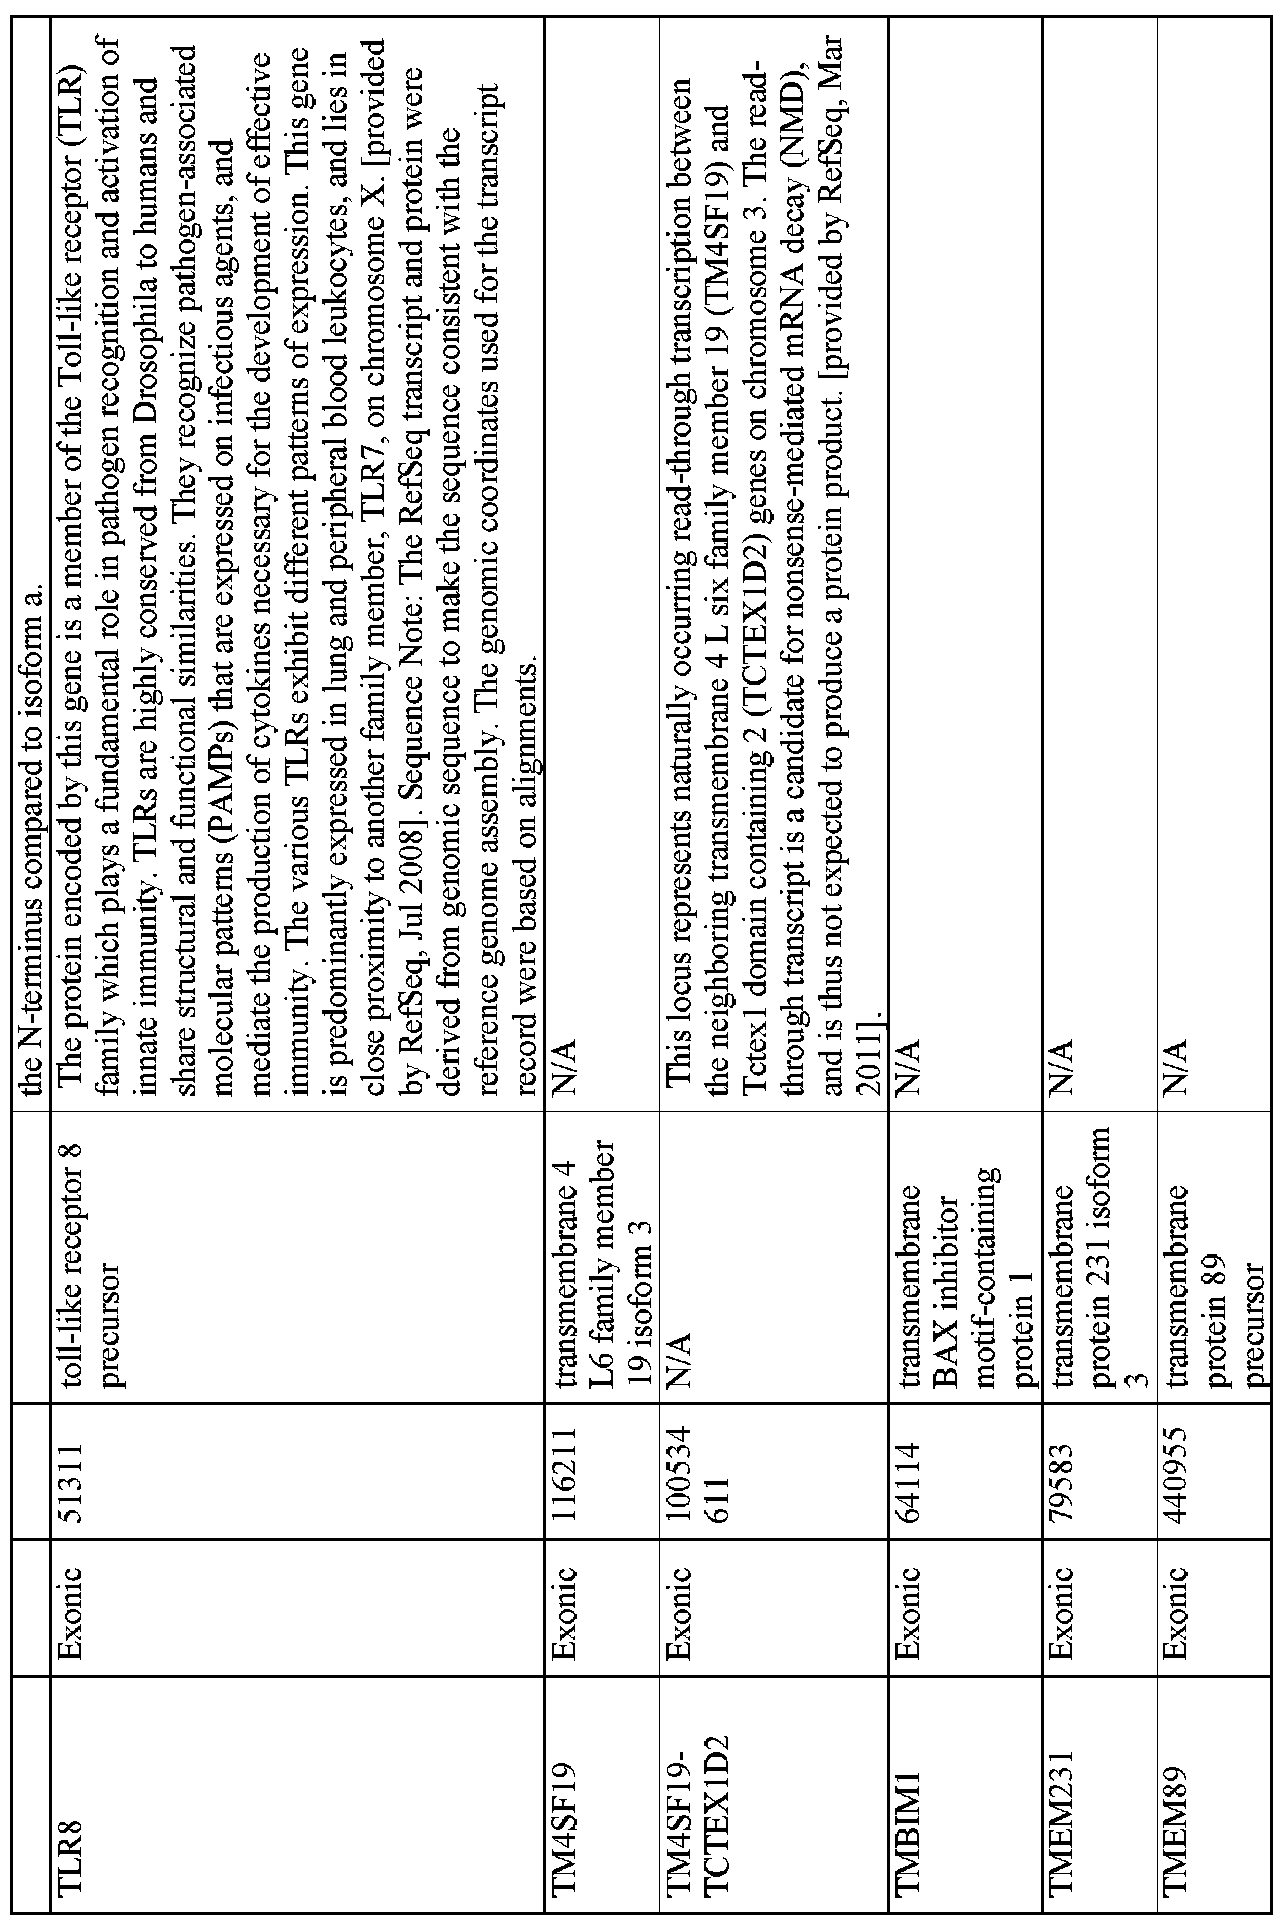 b593b1b6801 WO2013120018A1 - Methods and compositions for screening and treating  developmental disorders - Google Patents